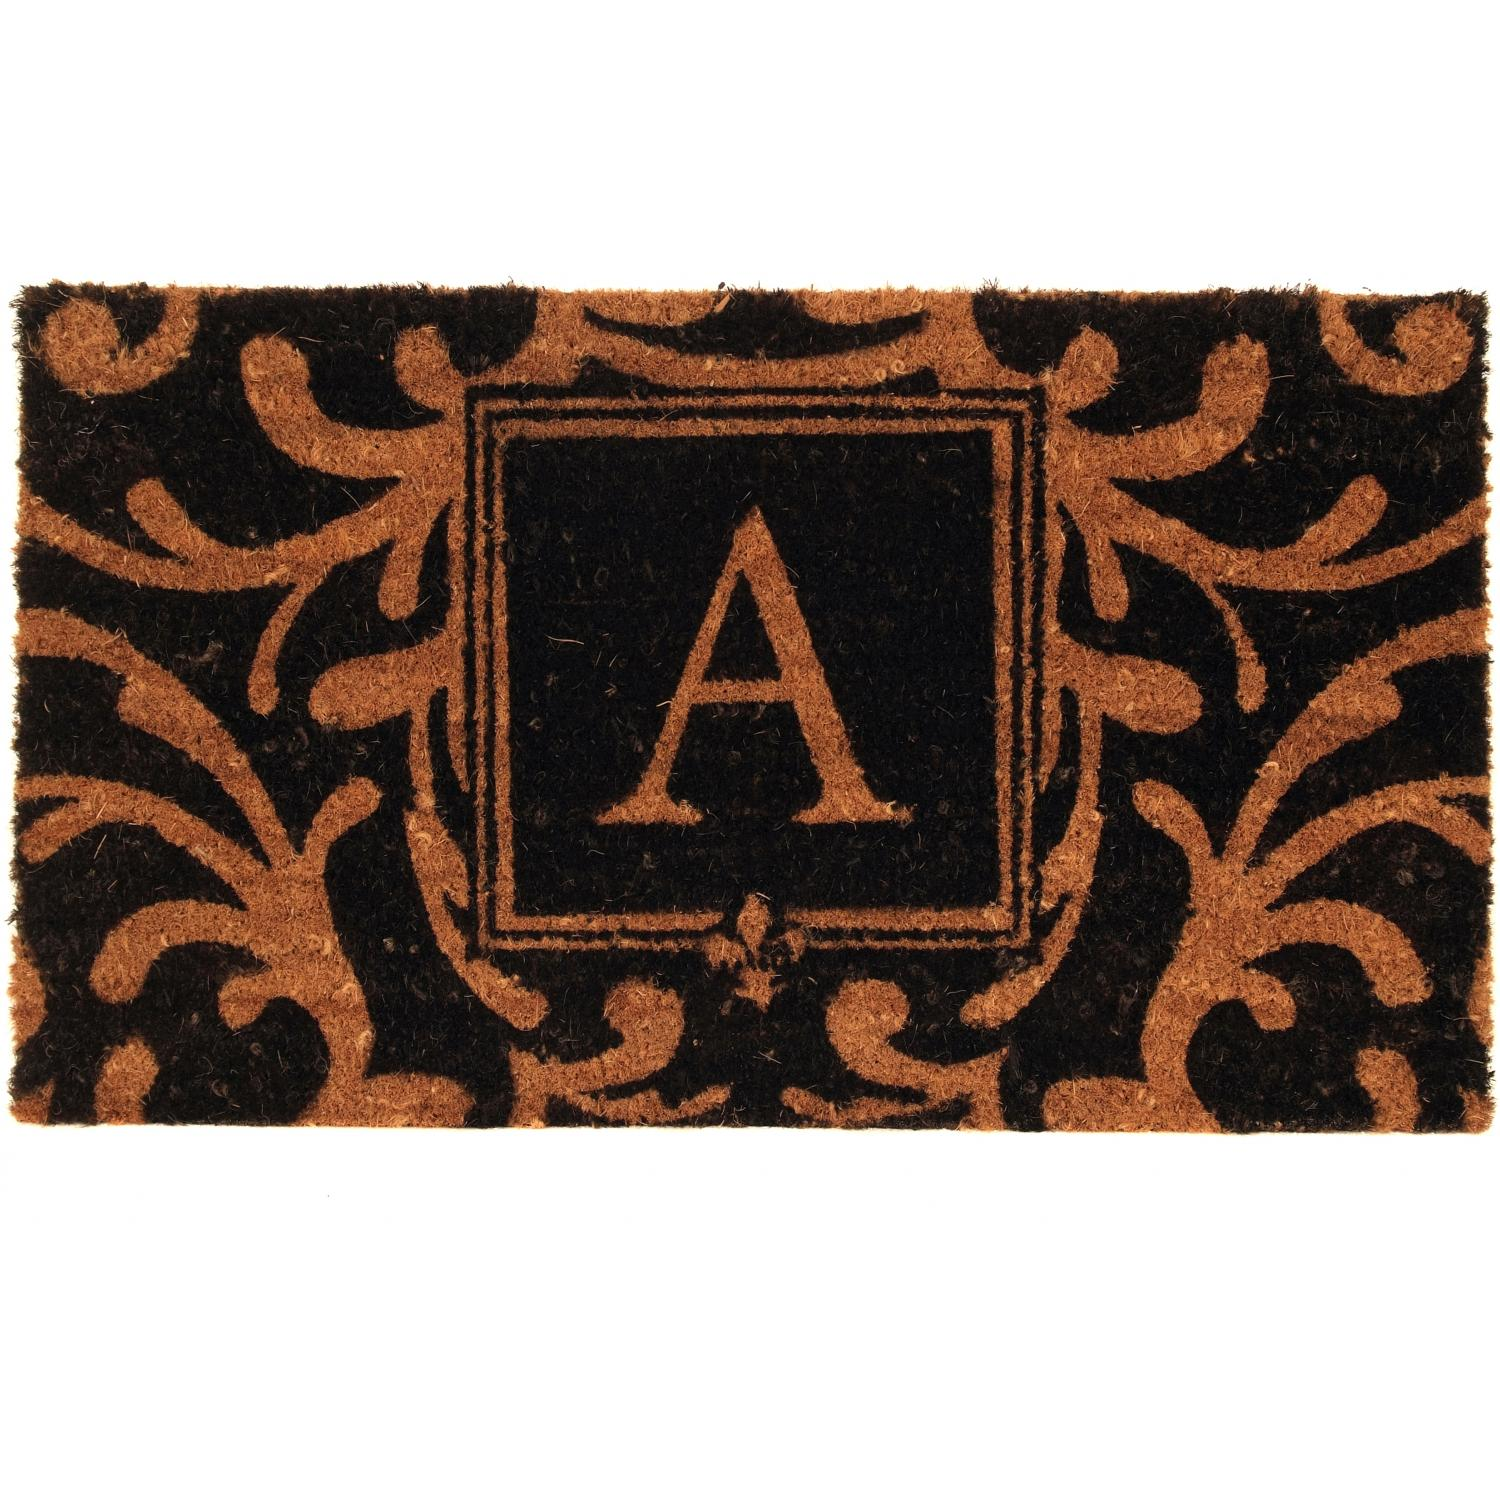 Picture of Evergreen Classic Block Monogram Coir Door Mat - Letter A